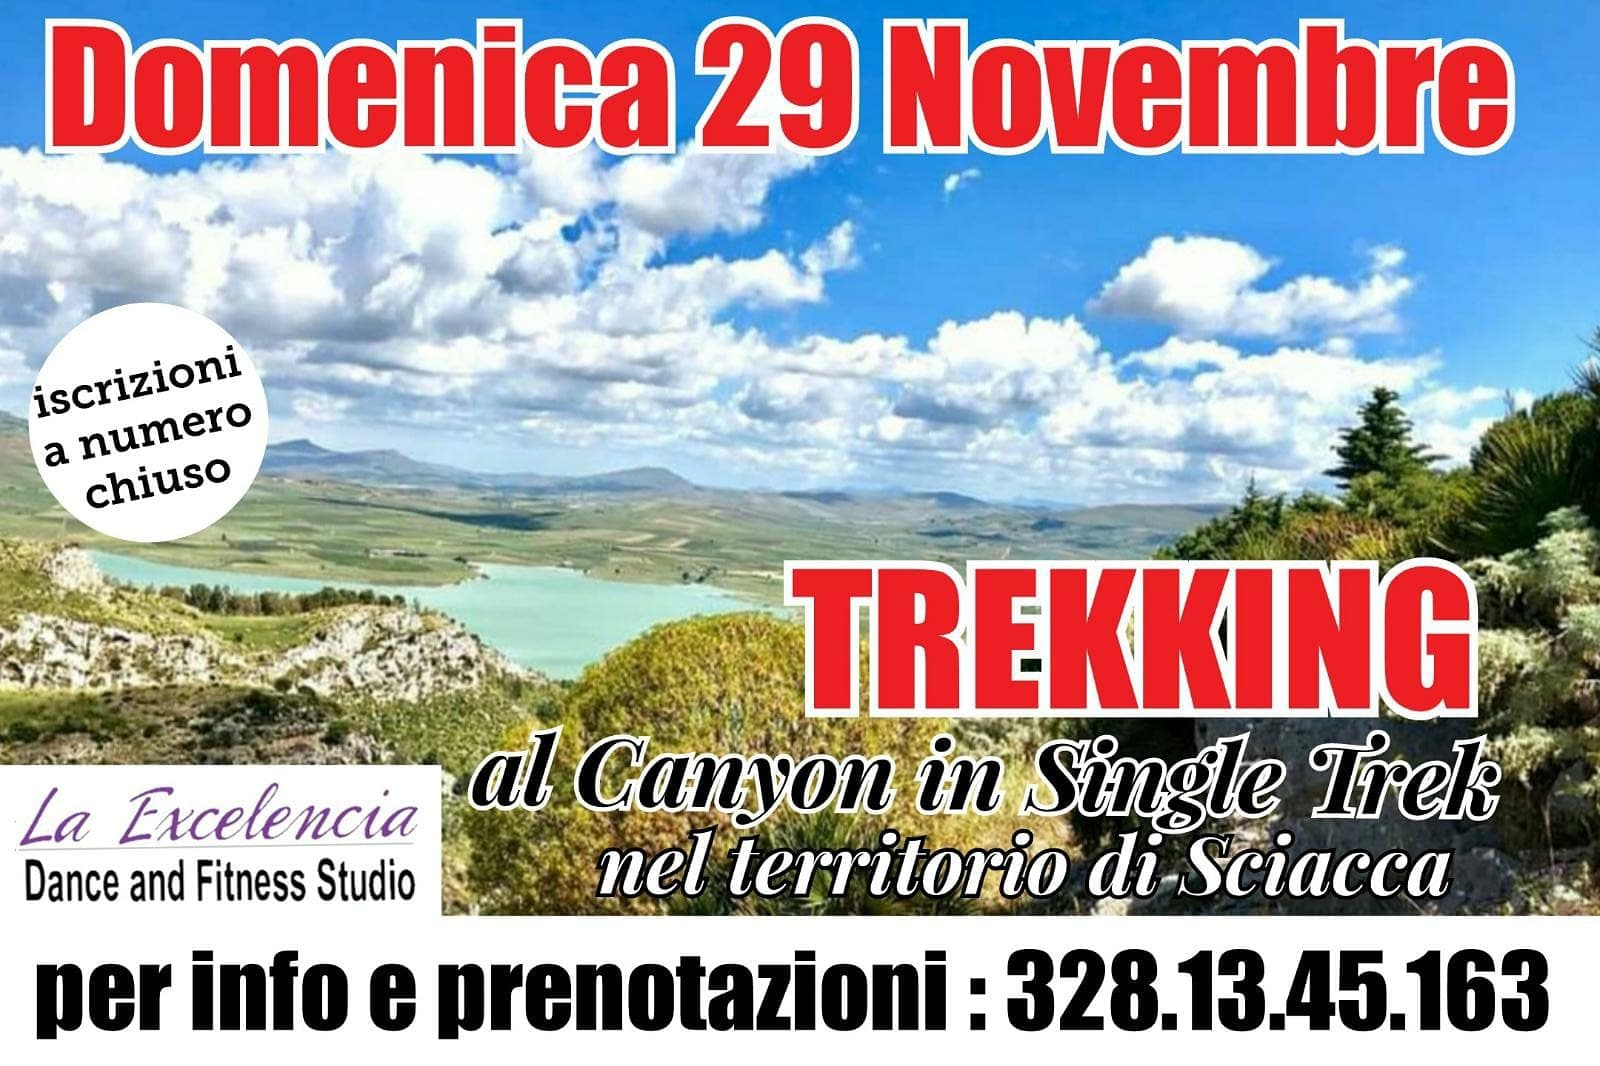 Single Trek al Canyon della Tardara